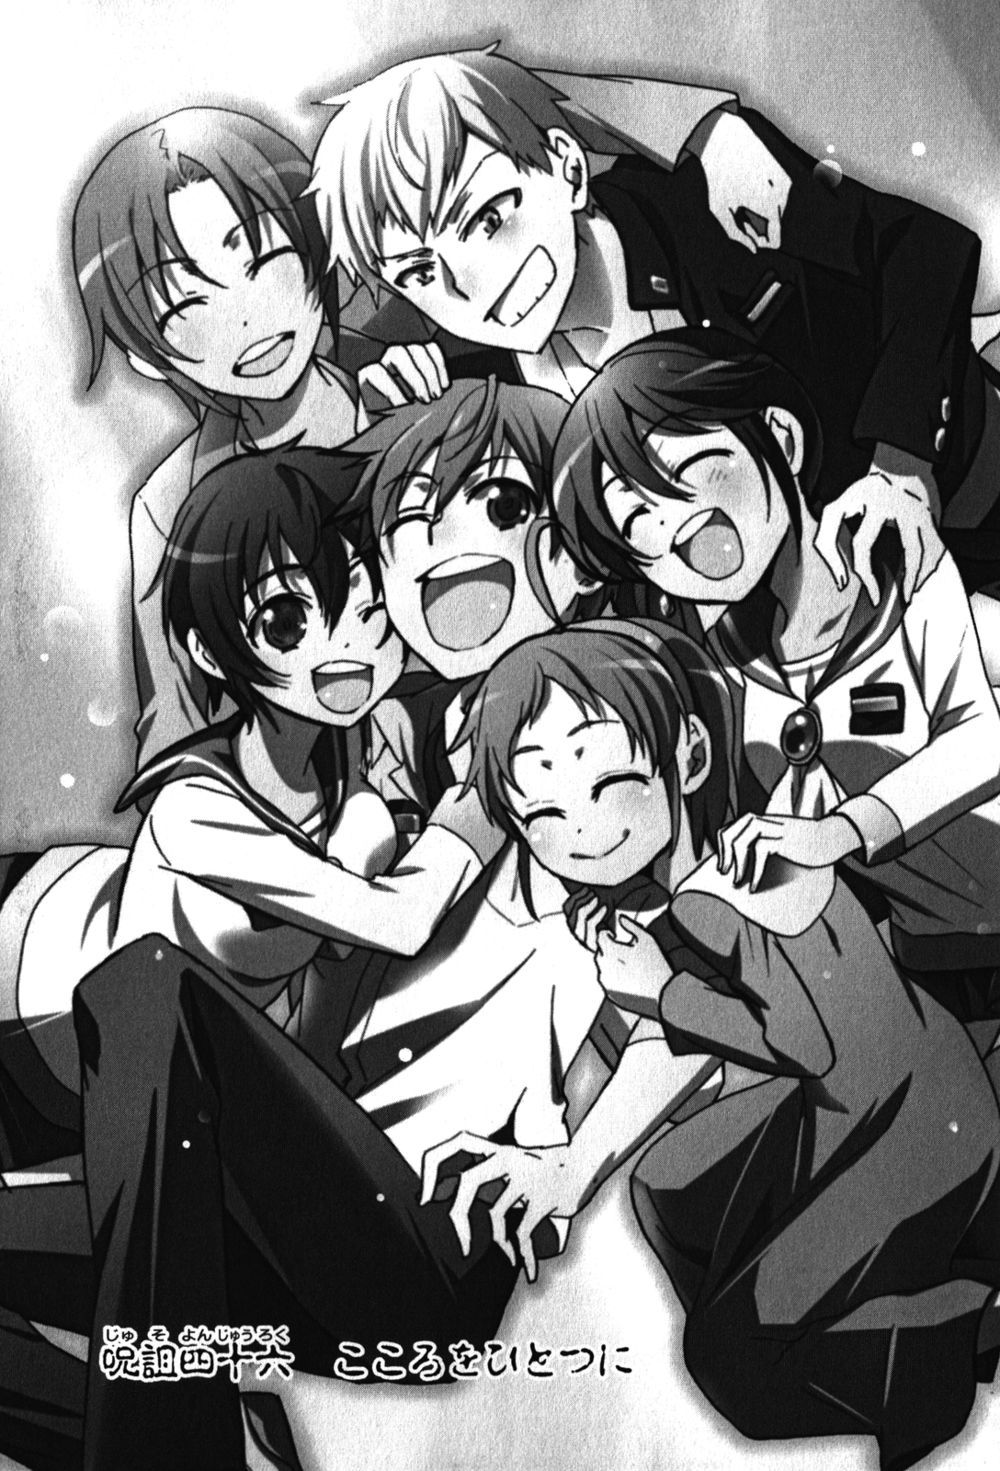 Yuka Mochida/Gallery Corpse party, Anime, Manga covers